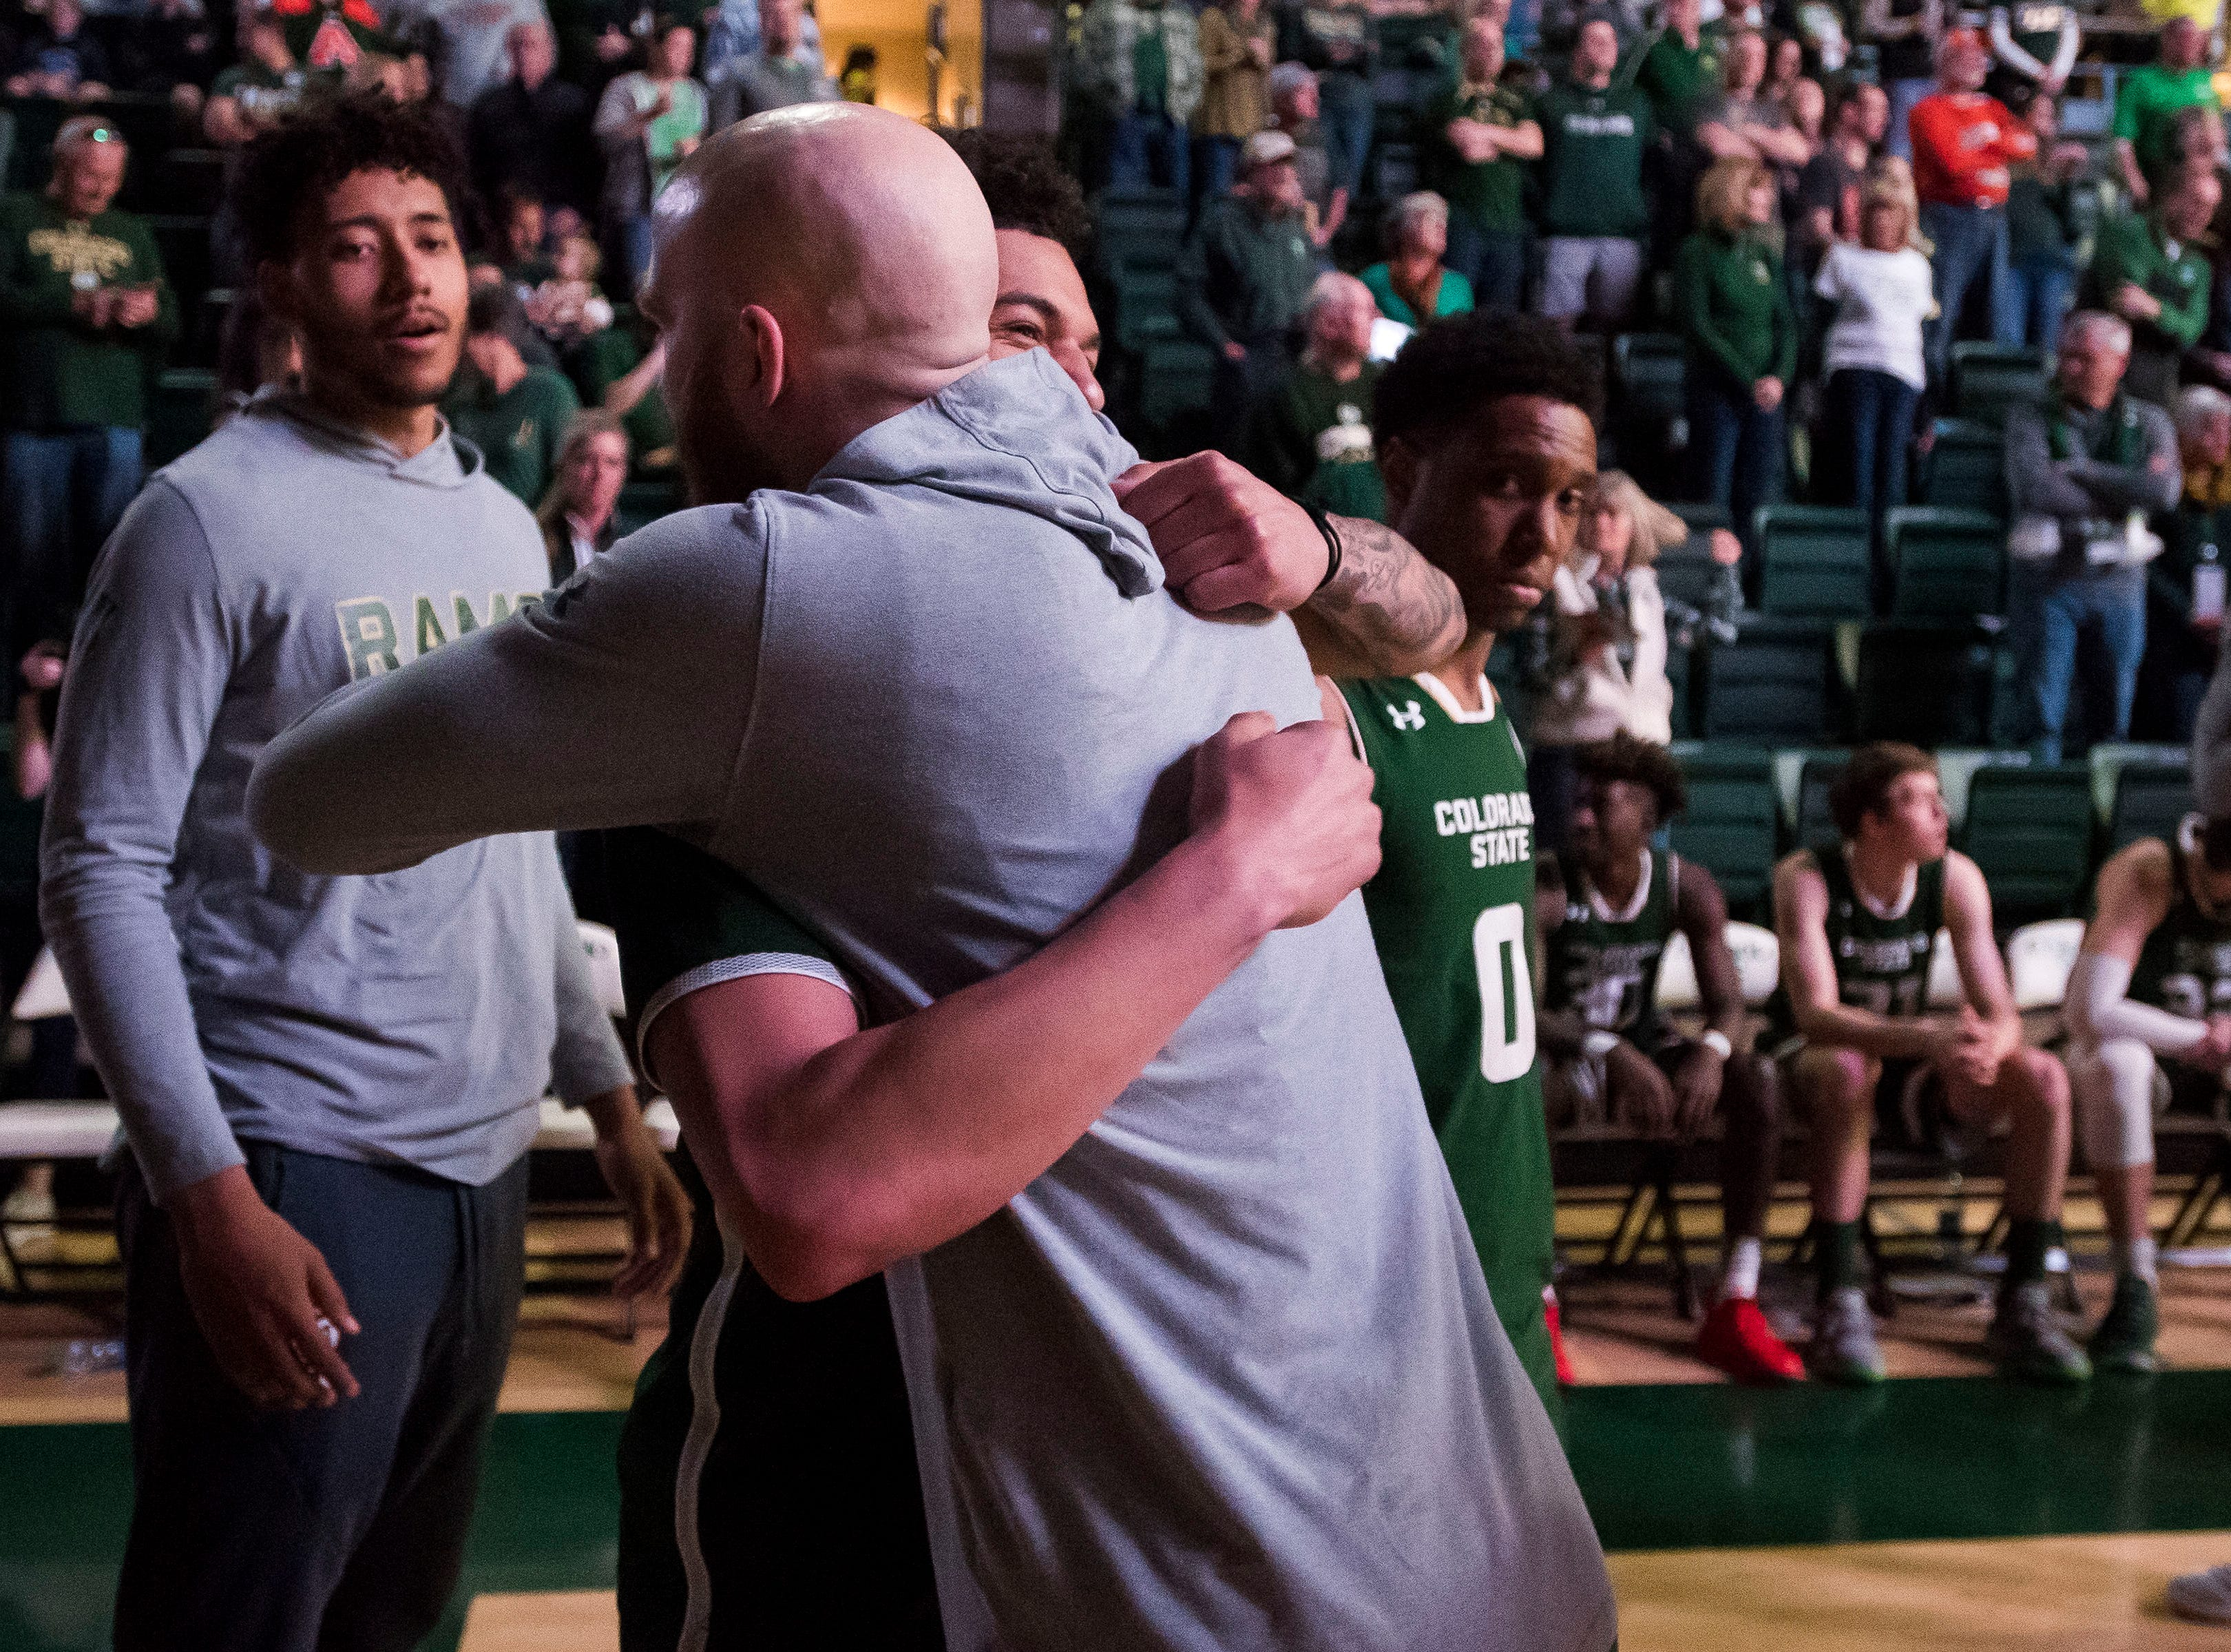 Colorado State University senior guard Robbie Berwick (14) hugs junior guard Anthony Masinton-Bonner (15) before a game against University of Nevada Las Vegas on Saturday, March 9, 2019, at Moby Arena in Fort Collins, Colo.